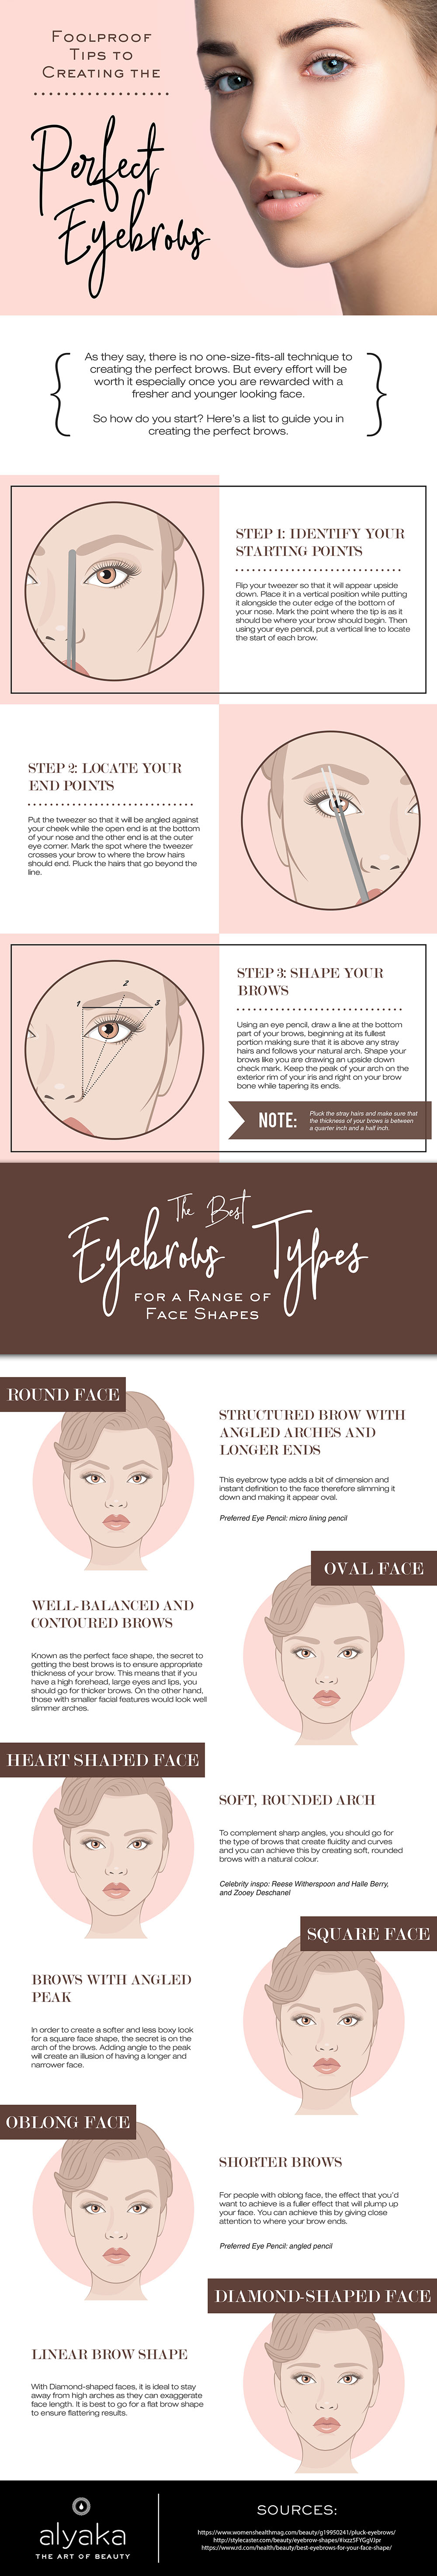 The Best Eyebrow Types for a Range of Face Shapes | Alyaka